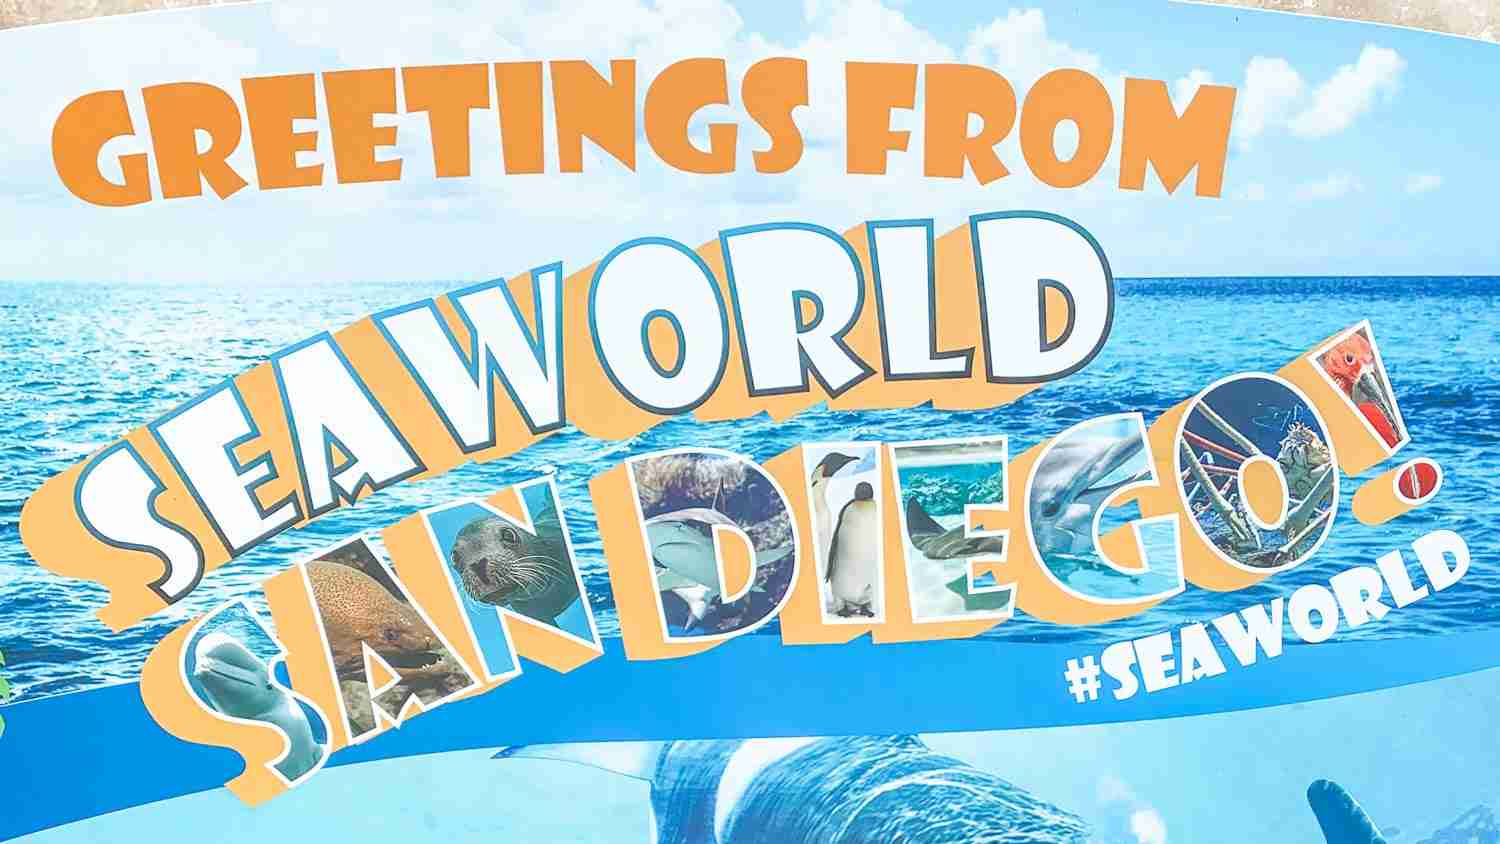 greetings from seaworld sign